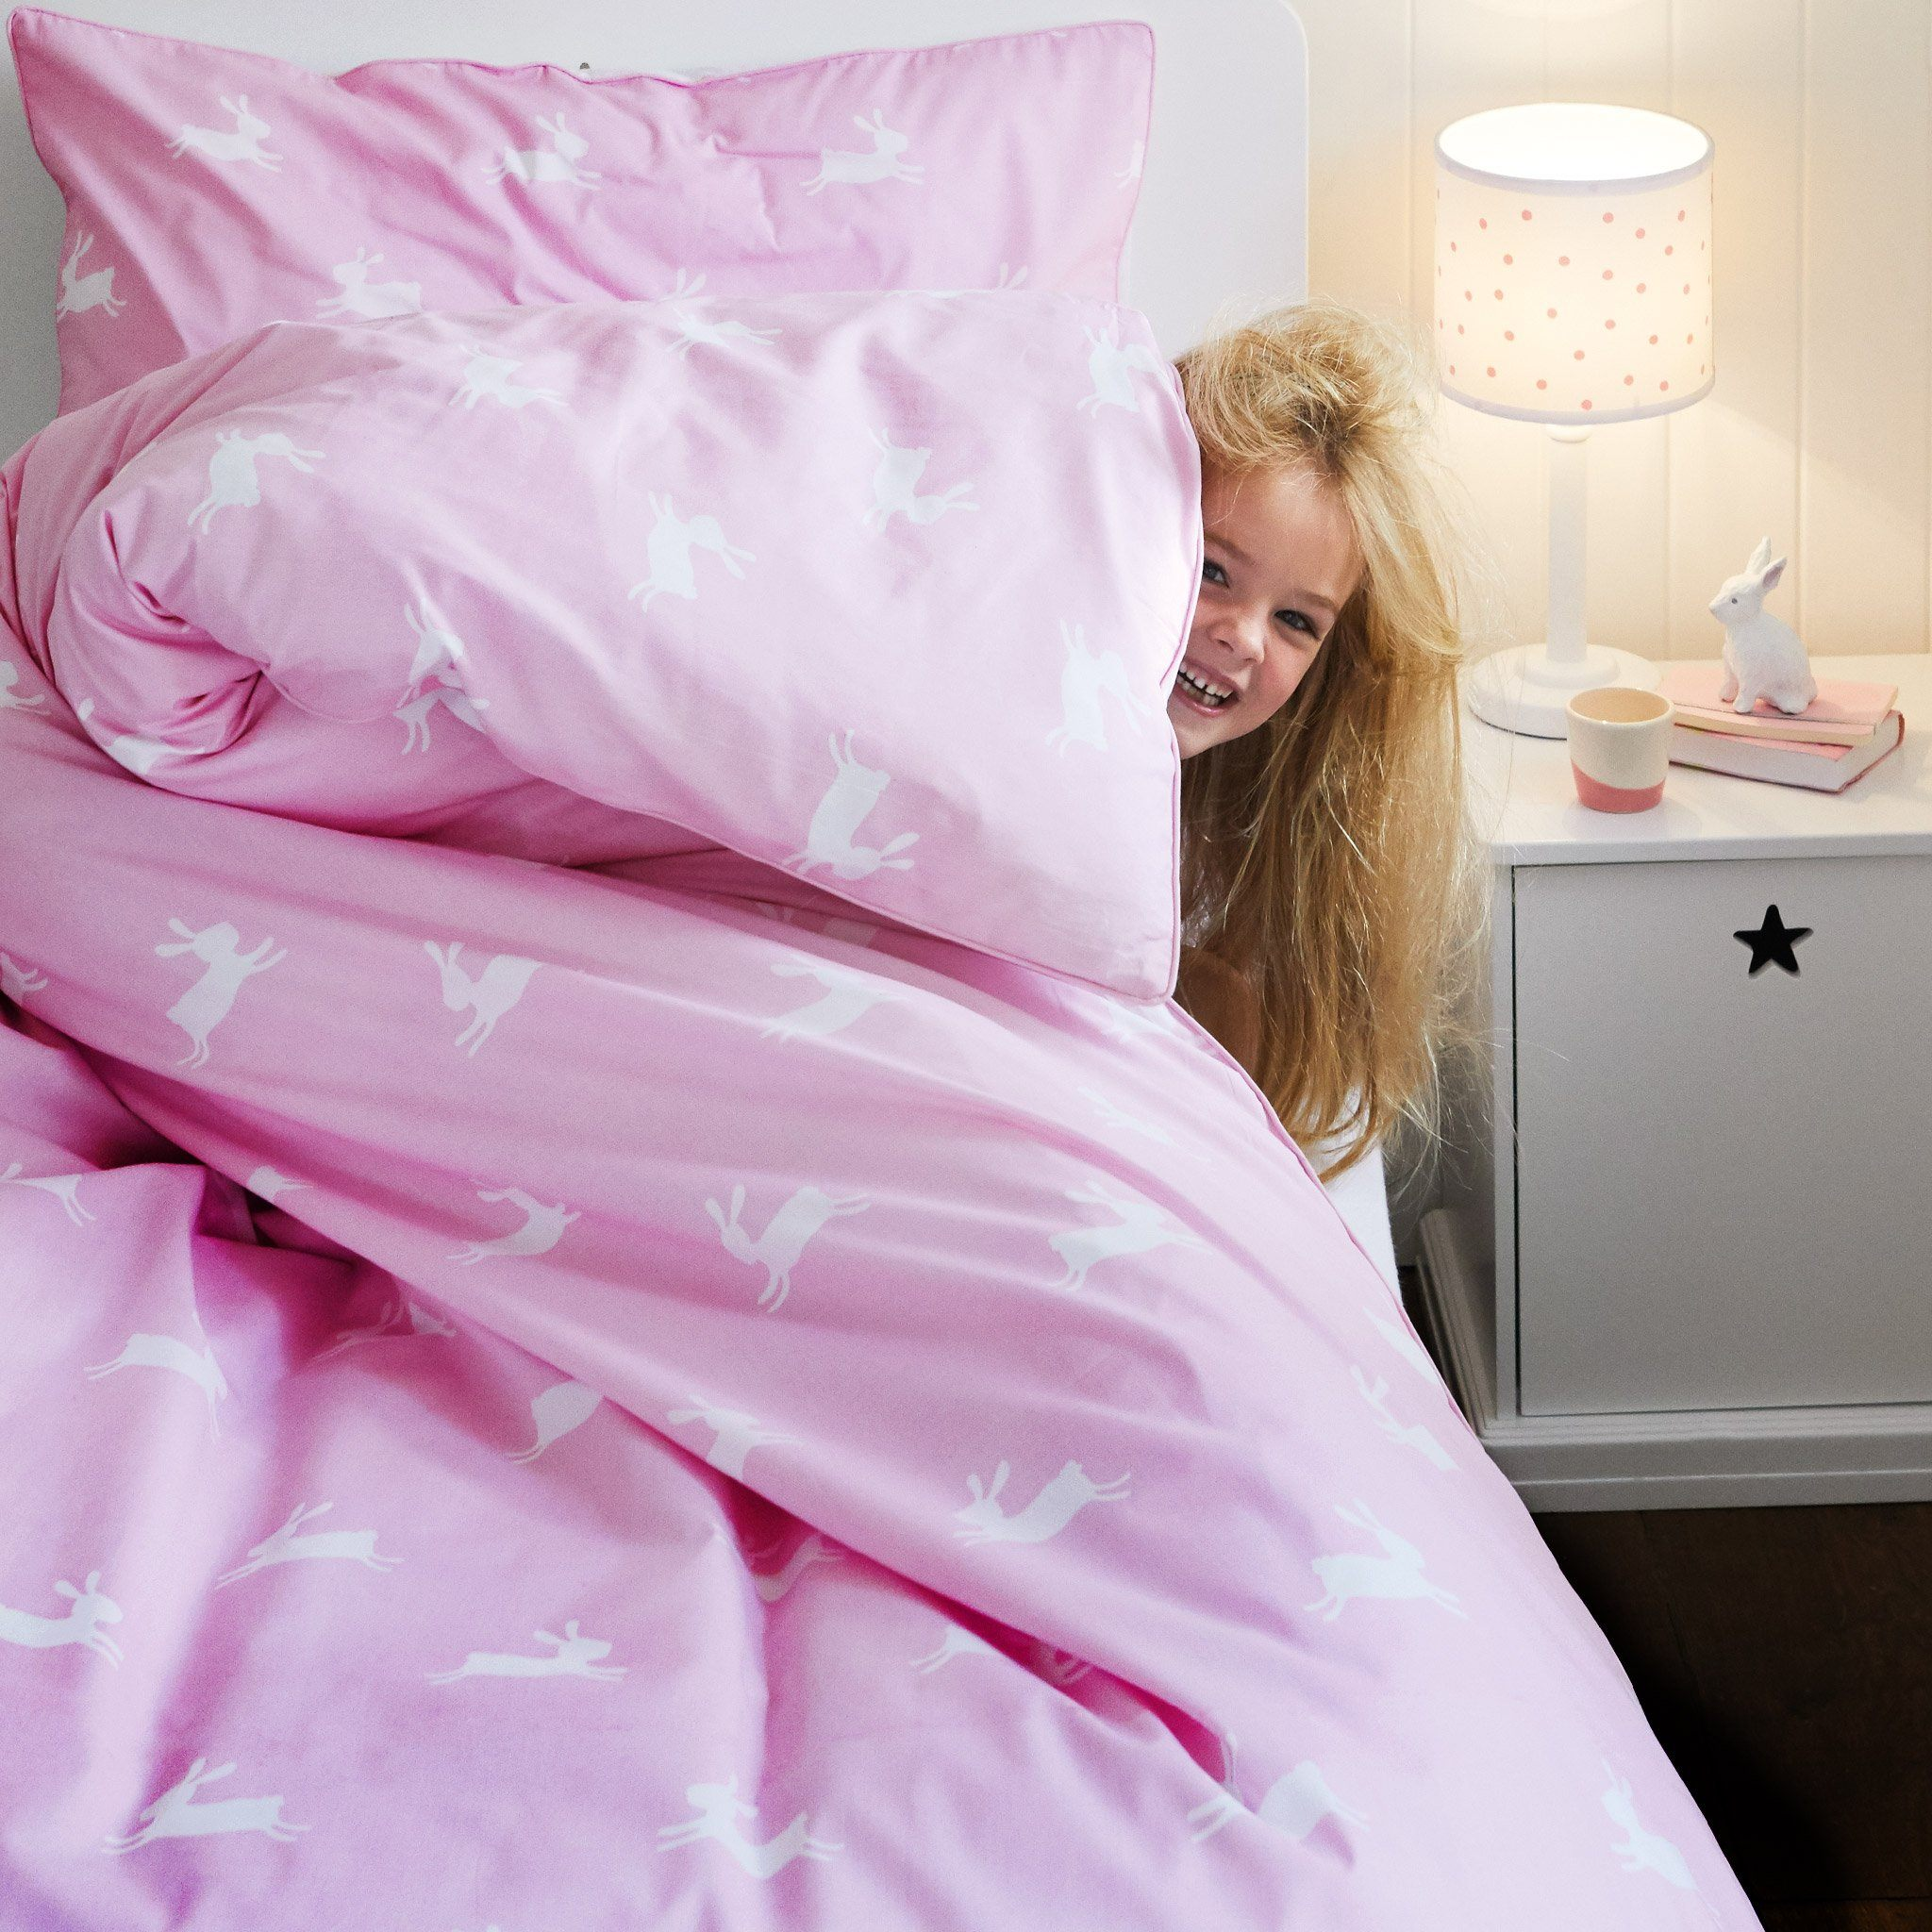 pink super duvet plum comfort king pillowcase size lilac comforter cover bedding duvets westerncycles bedroom botanical of cheap gray teen lavender grey covers childrens sets set quilt and purple meadow dark full queen double queens site comforters single reversible